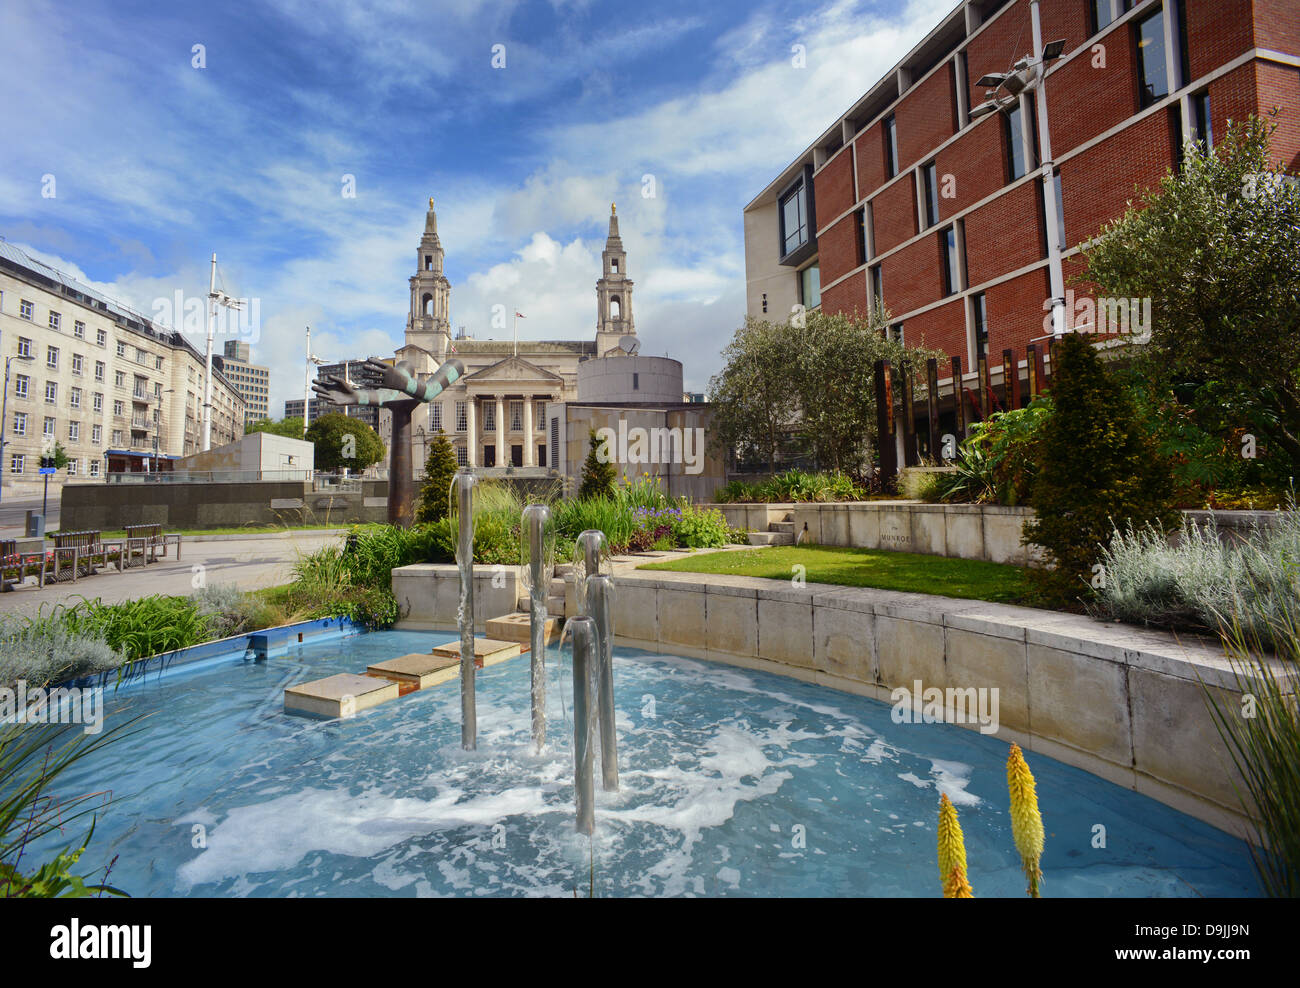 fountain in front of the nelson mandela gardens by the civic hall in the city of leeds yorkshire uk - Stock Image